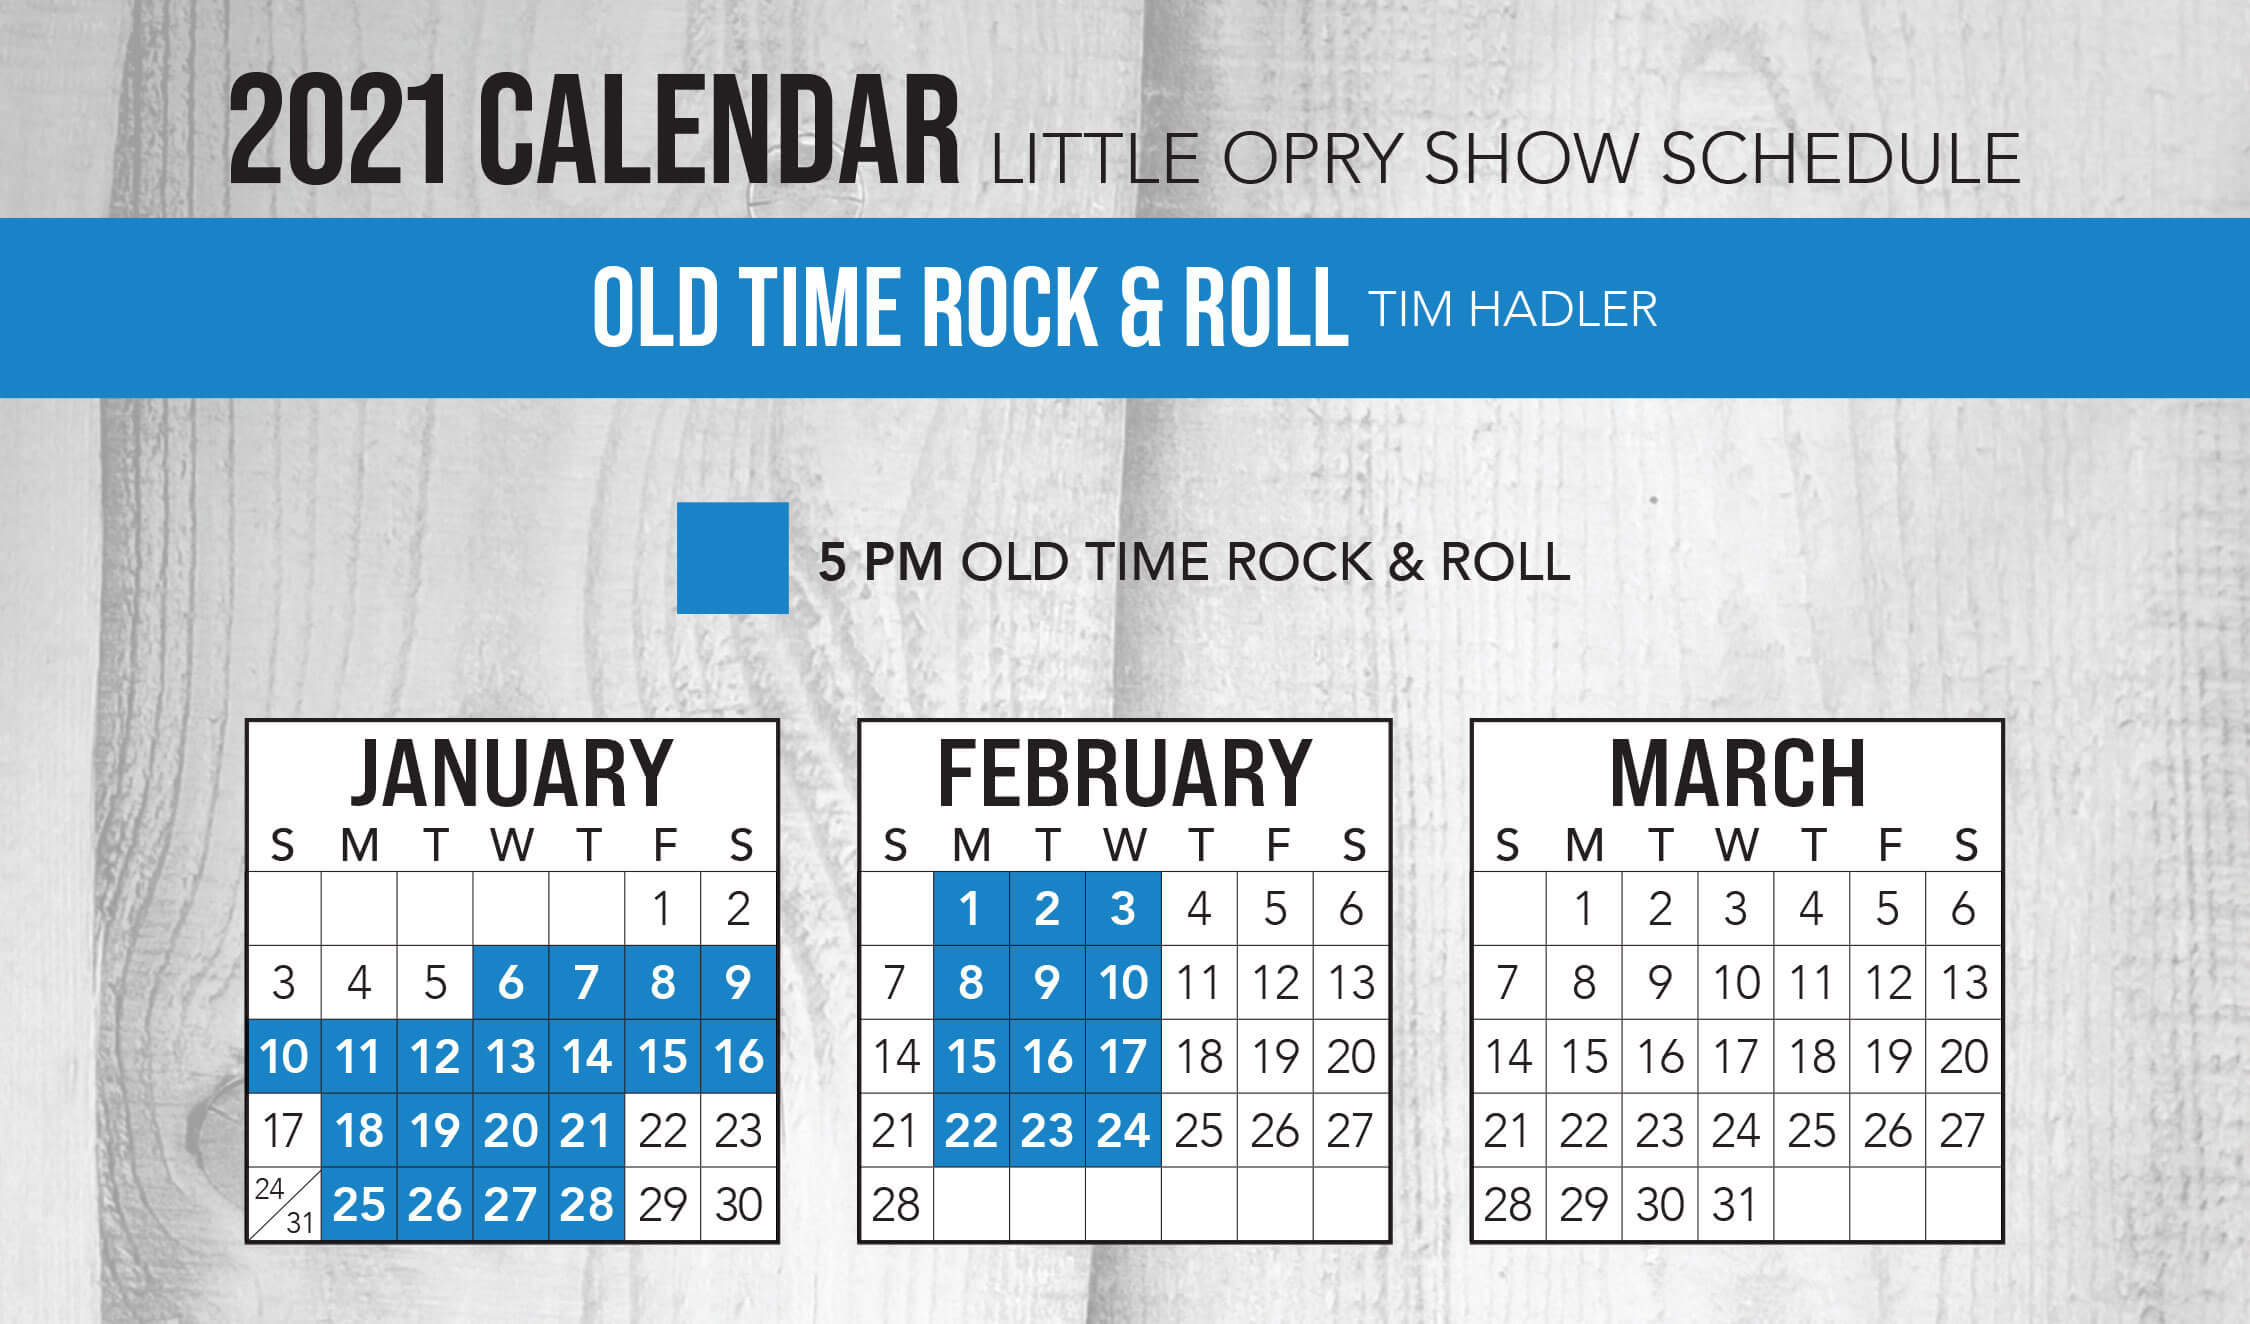 Old Time Rock & Roll 2021 Schedule